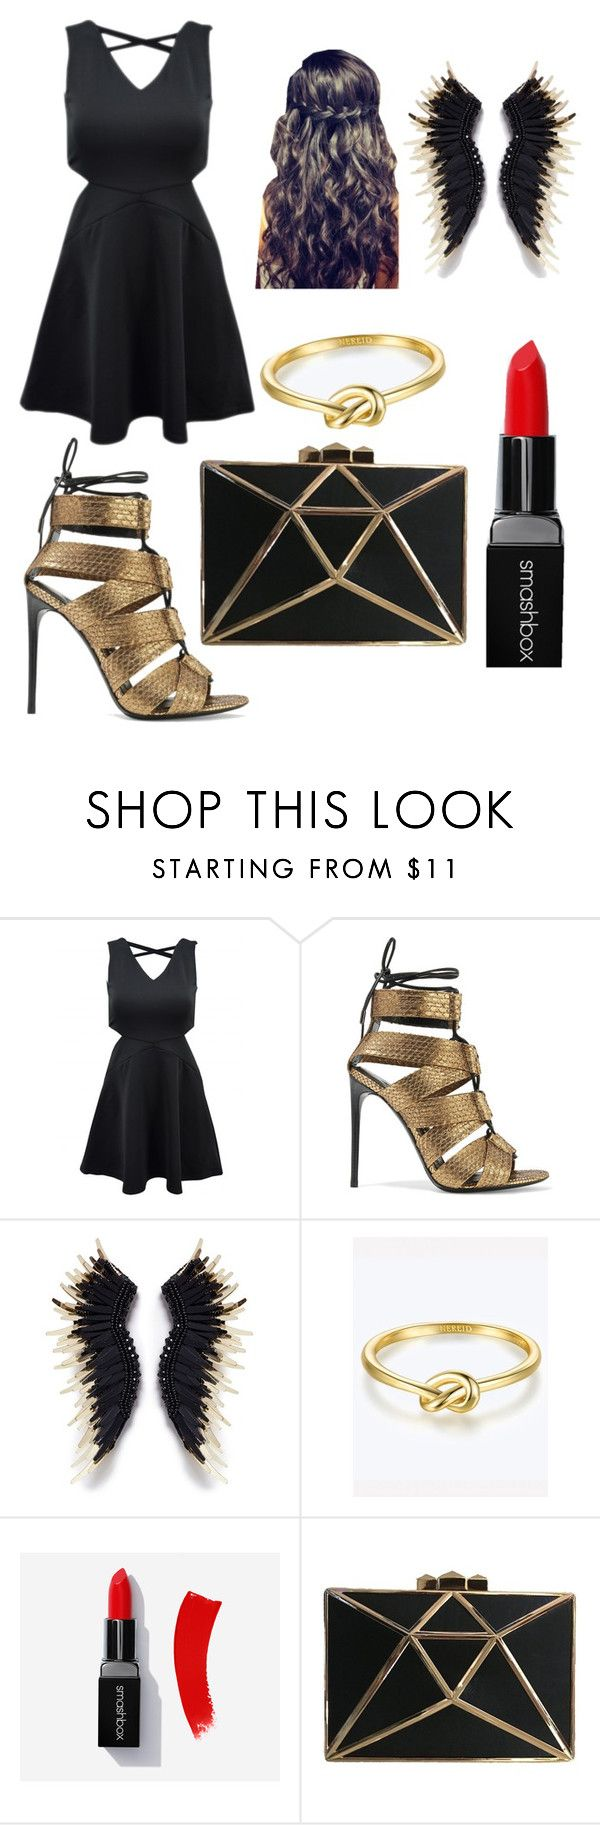 """une tenue pour Noël"" by bardou-oceane ❤ liked on Polyvore featuring Tom Ford"